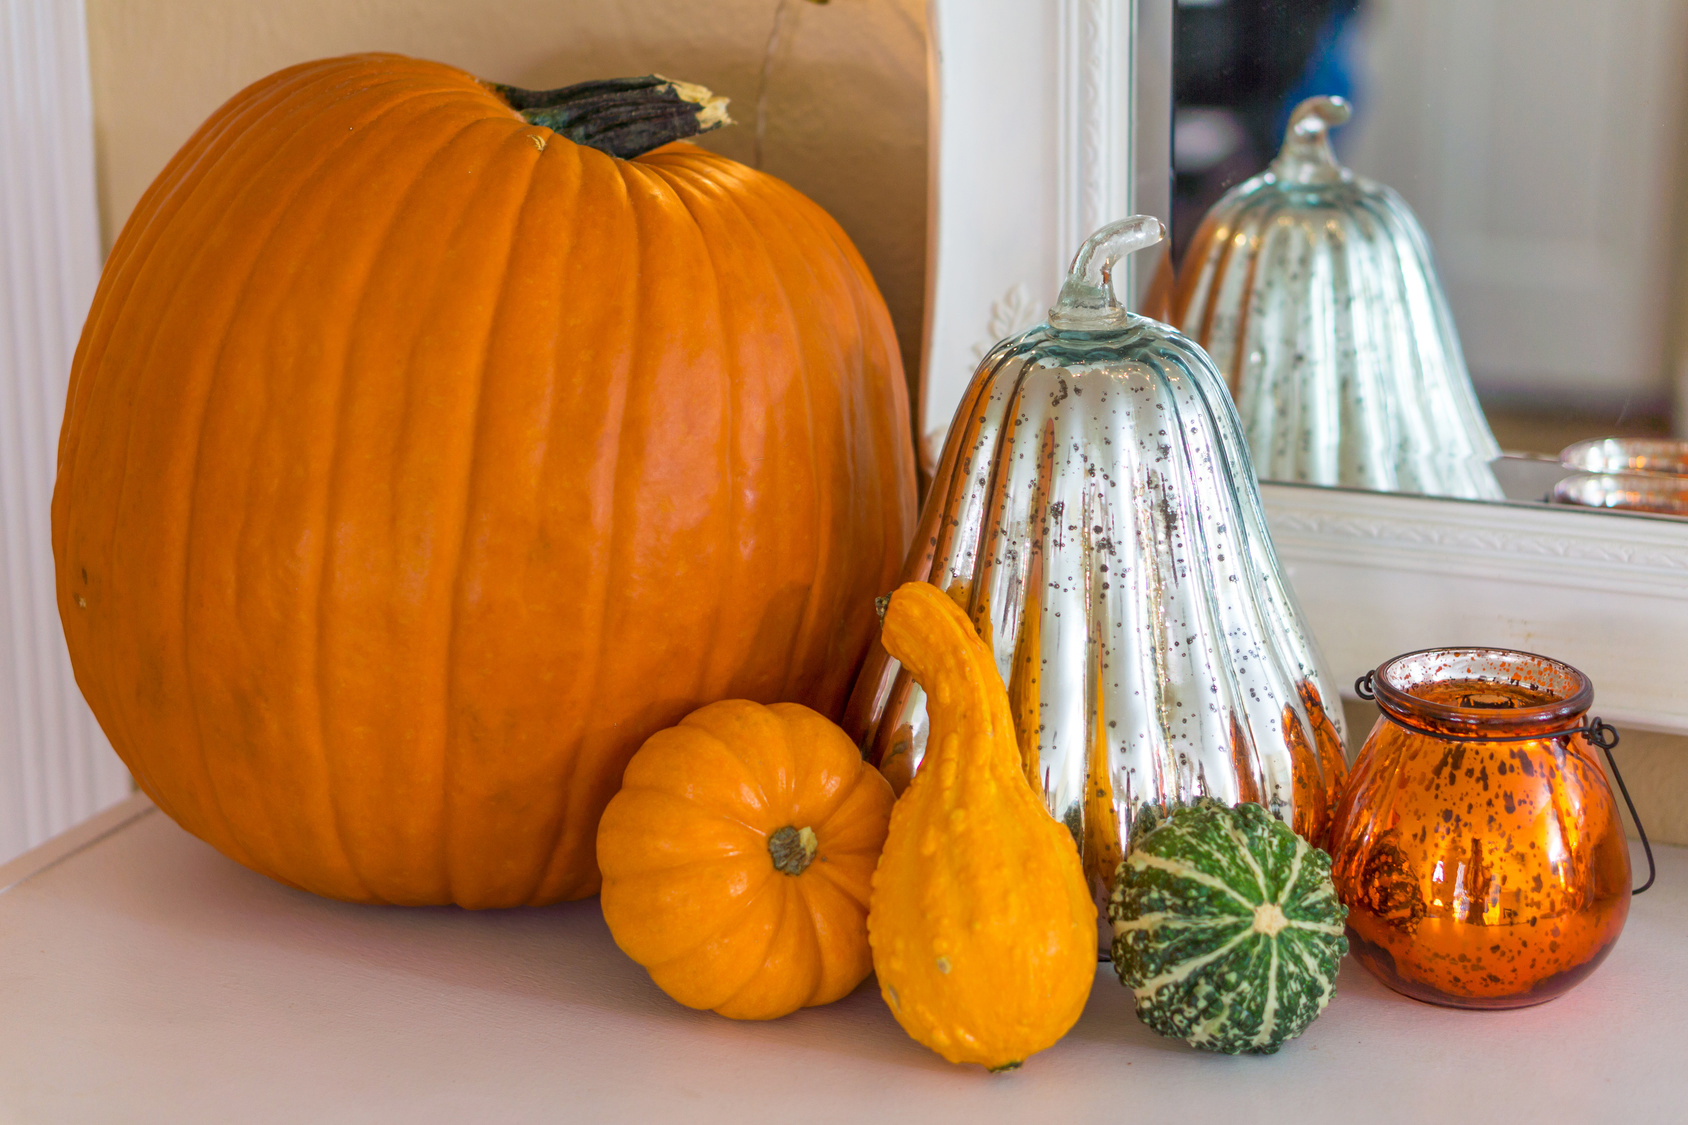 Pumpkins and Gourds with a mirror reflection